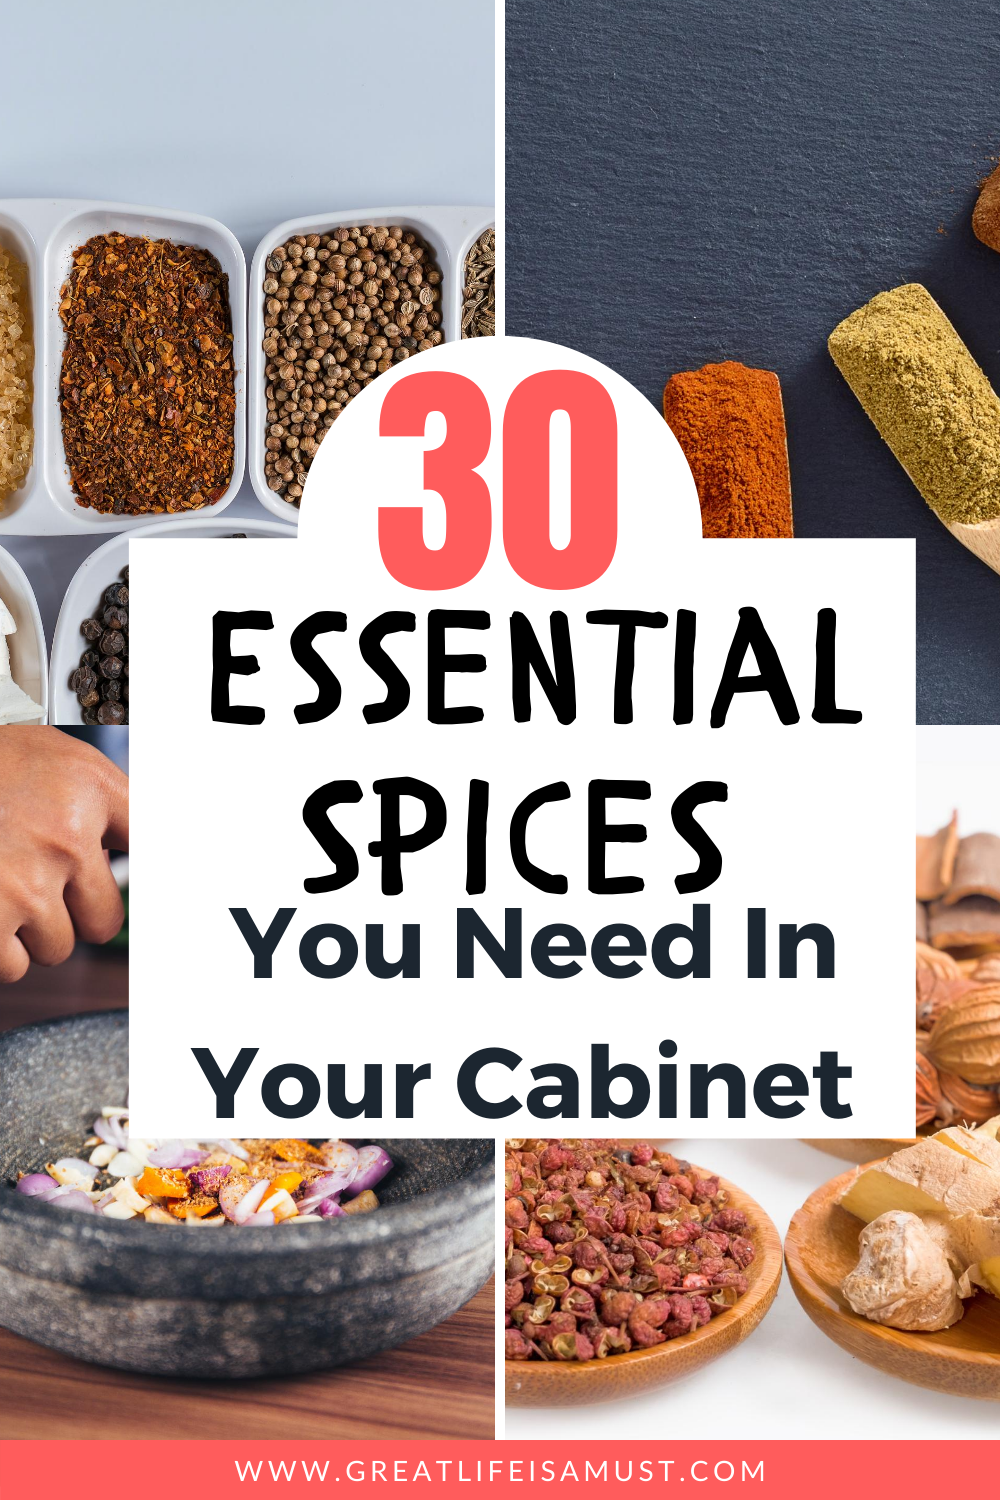 30 Essential Spices